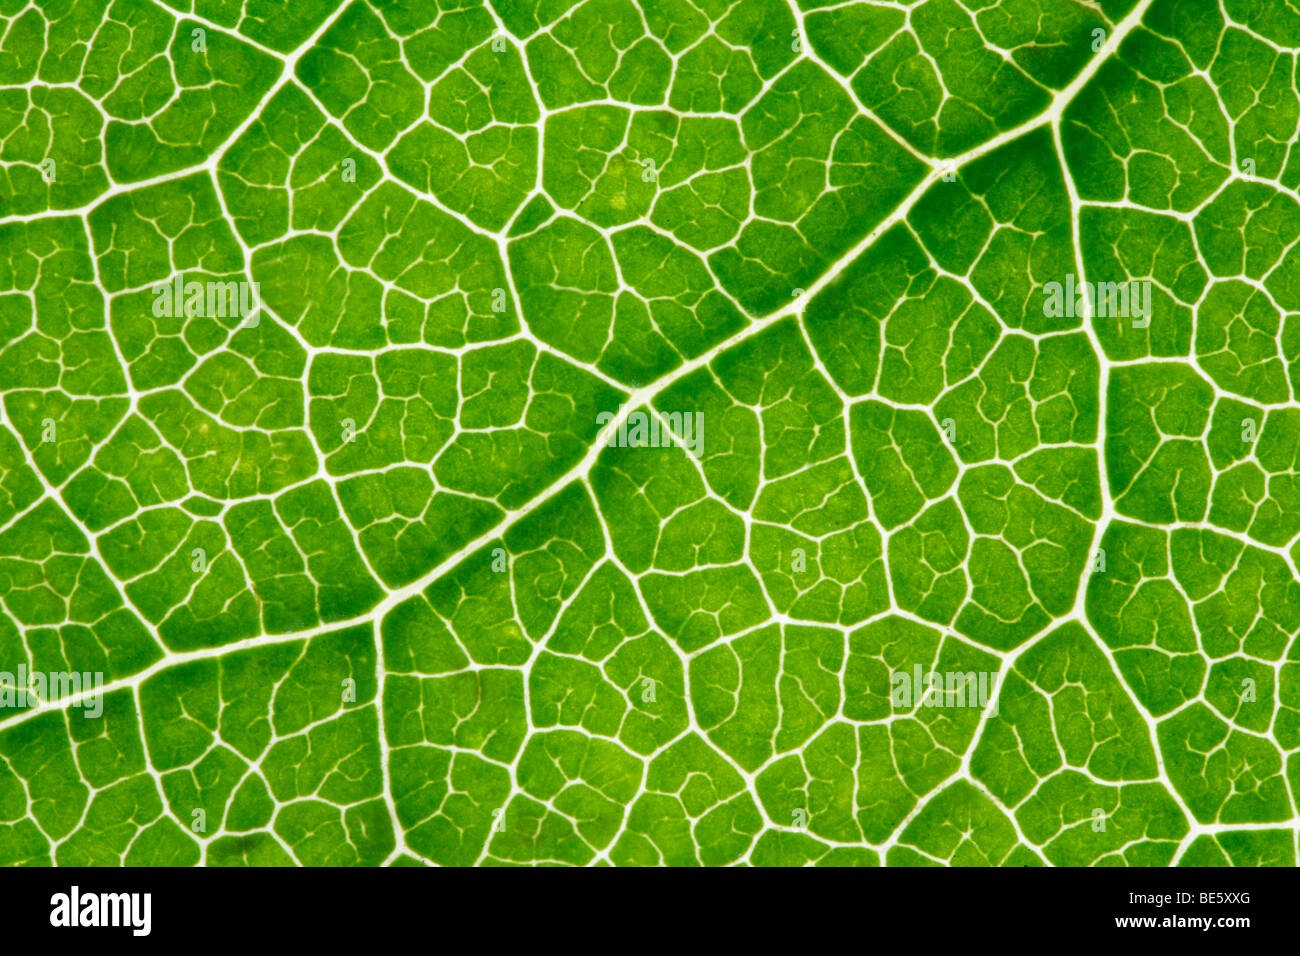 Leaf-veins, light shining through - Stock Image